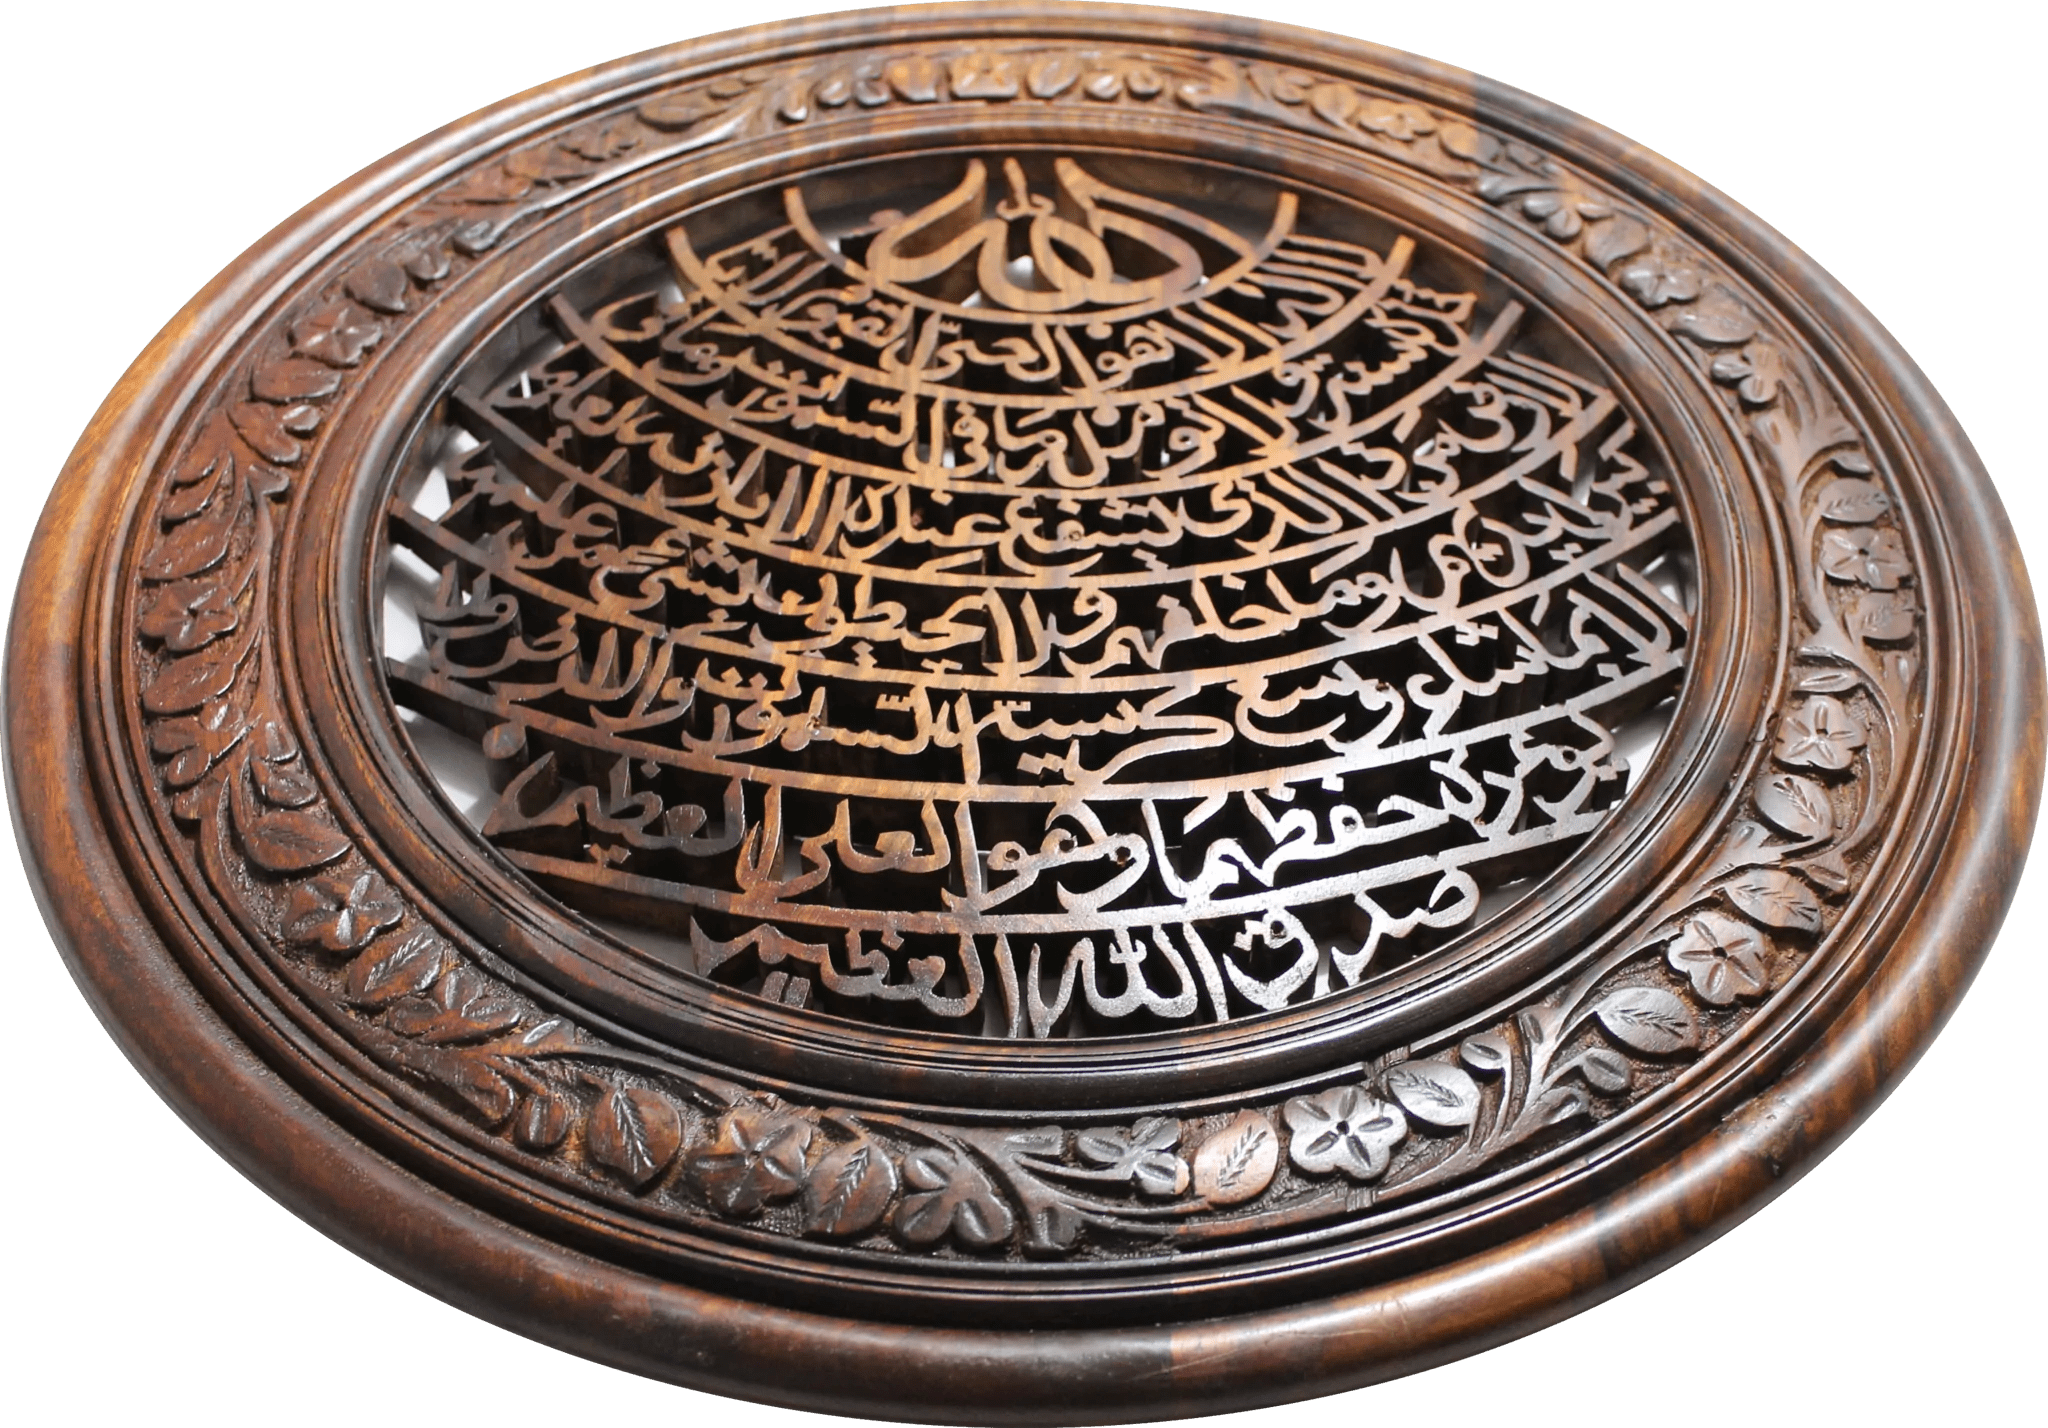 Motif Kursi Islamic Gift Set Hand Crafted Ayat Ul Kursi Verse Of The Throne And As Salatul Ibrahimiyyah Darood Ibrahimi Pair On Solid Wood Finish With Floral